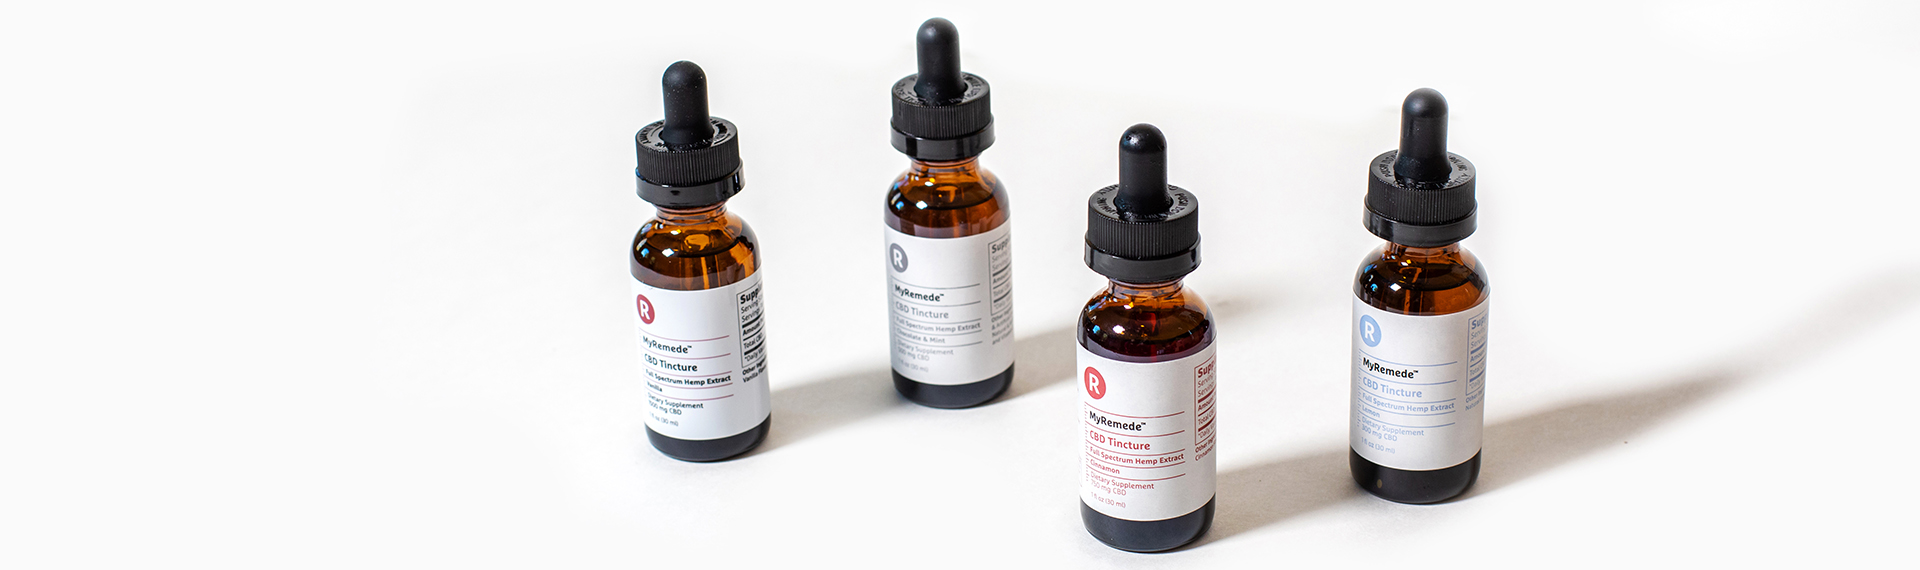 How to Choose the Right CBD Oil Tincture